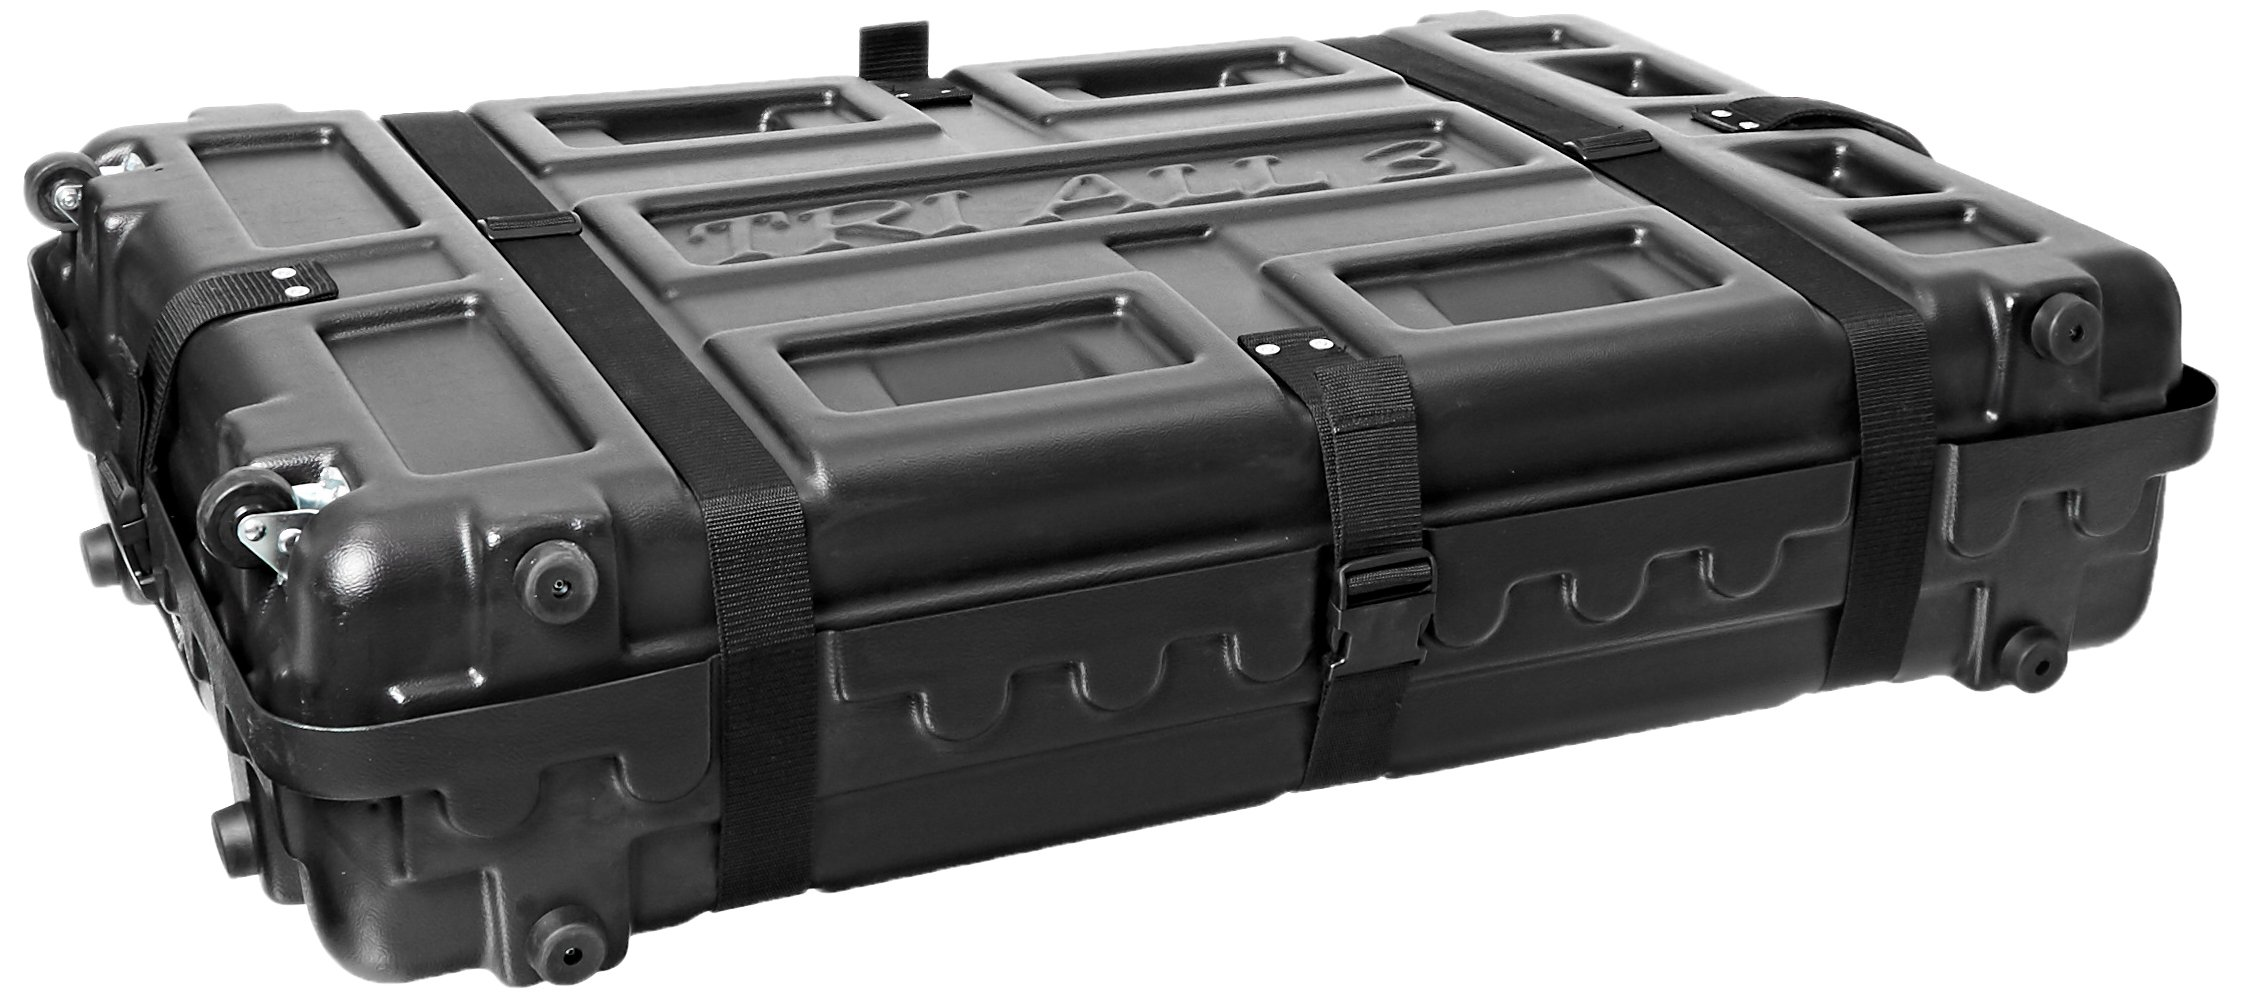 Tri All 3 Sports Clam Shell Bike Case by Tri All 3 Sports (Image #2)